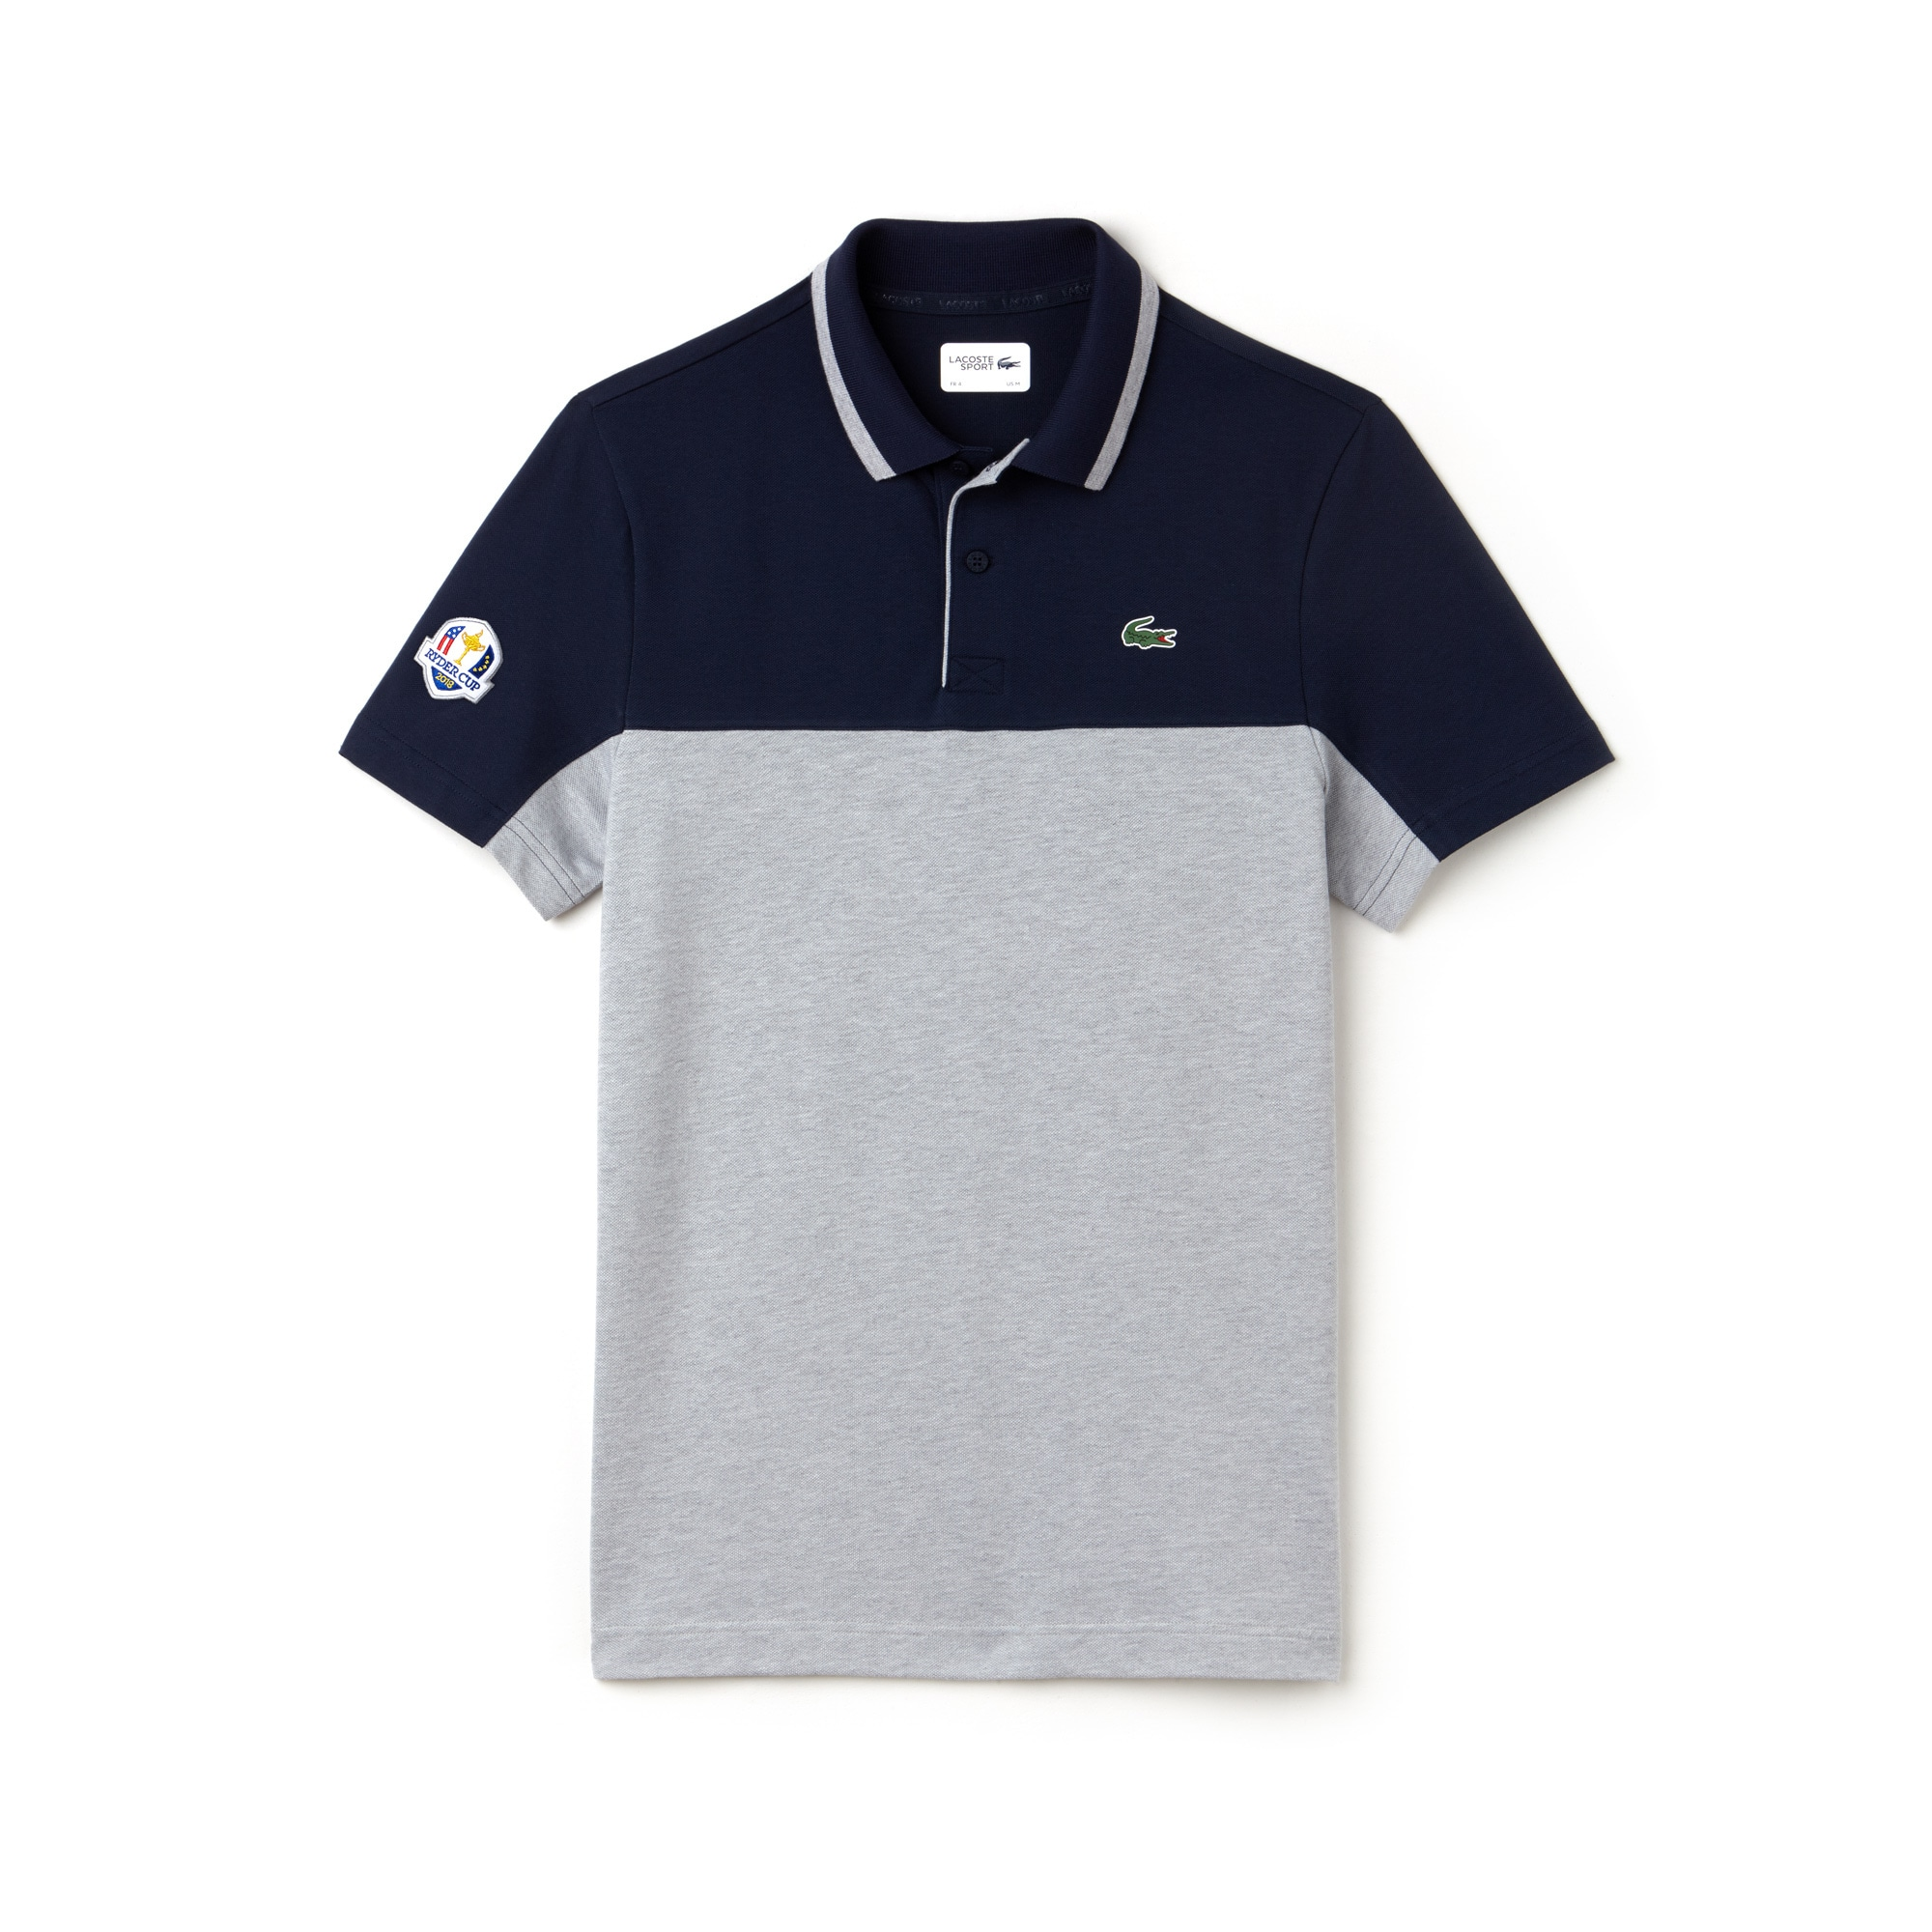 Men's Lacoste SPORT Ryder Cup Edition Tech Petit Piqué Golf Polo Shirt